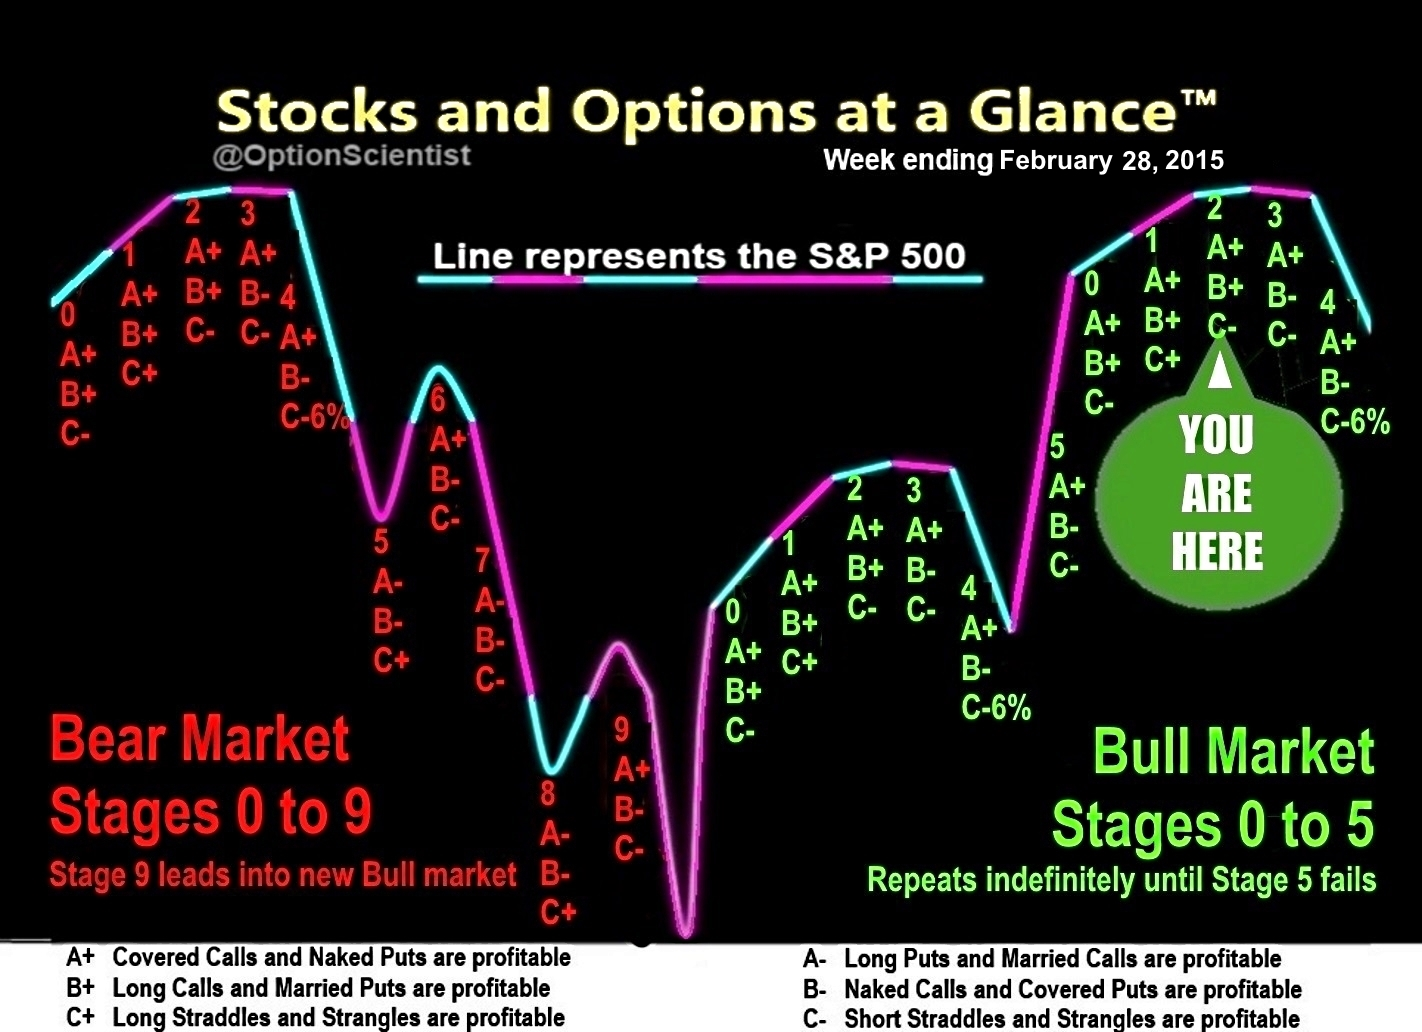 Stocks and Options at a Glance 02-26-15